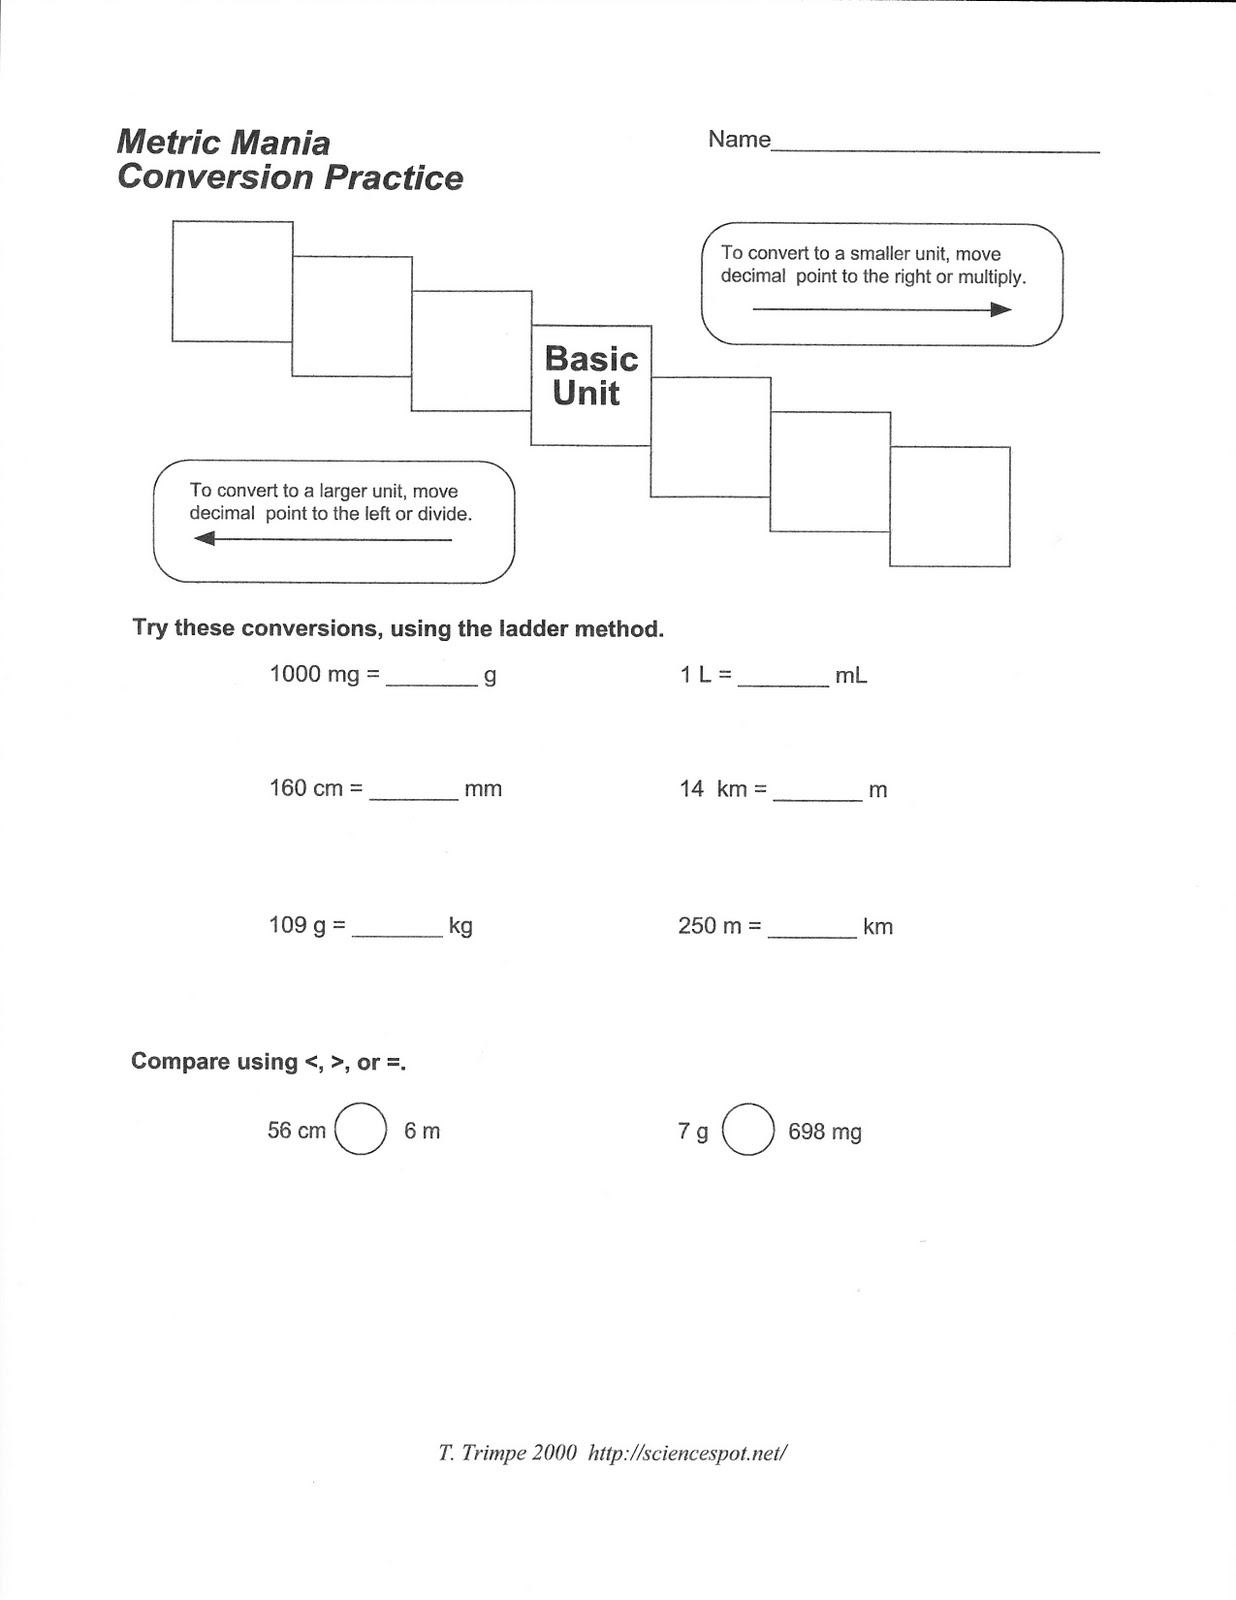 worksheet Supersize Me Worksheet supersize me worksheet answers fbopen to practice metric conversions further sheet tabs definition